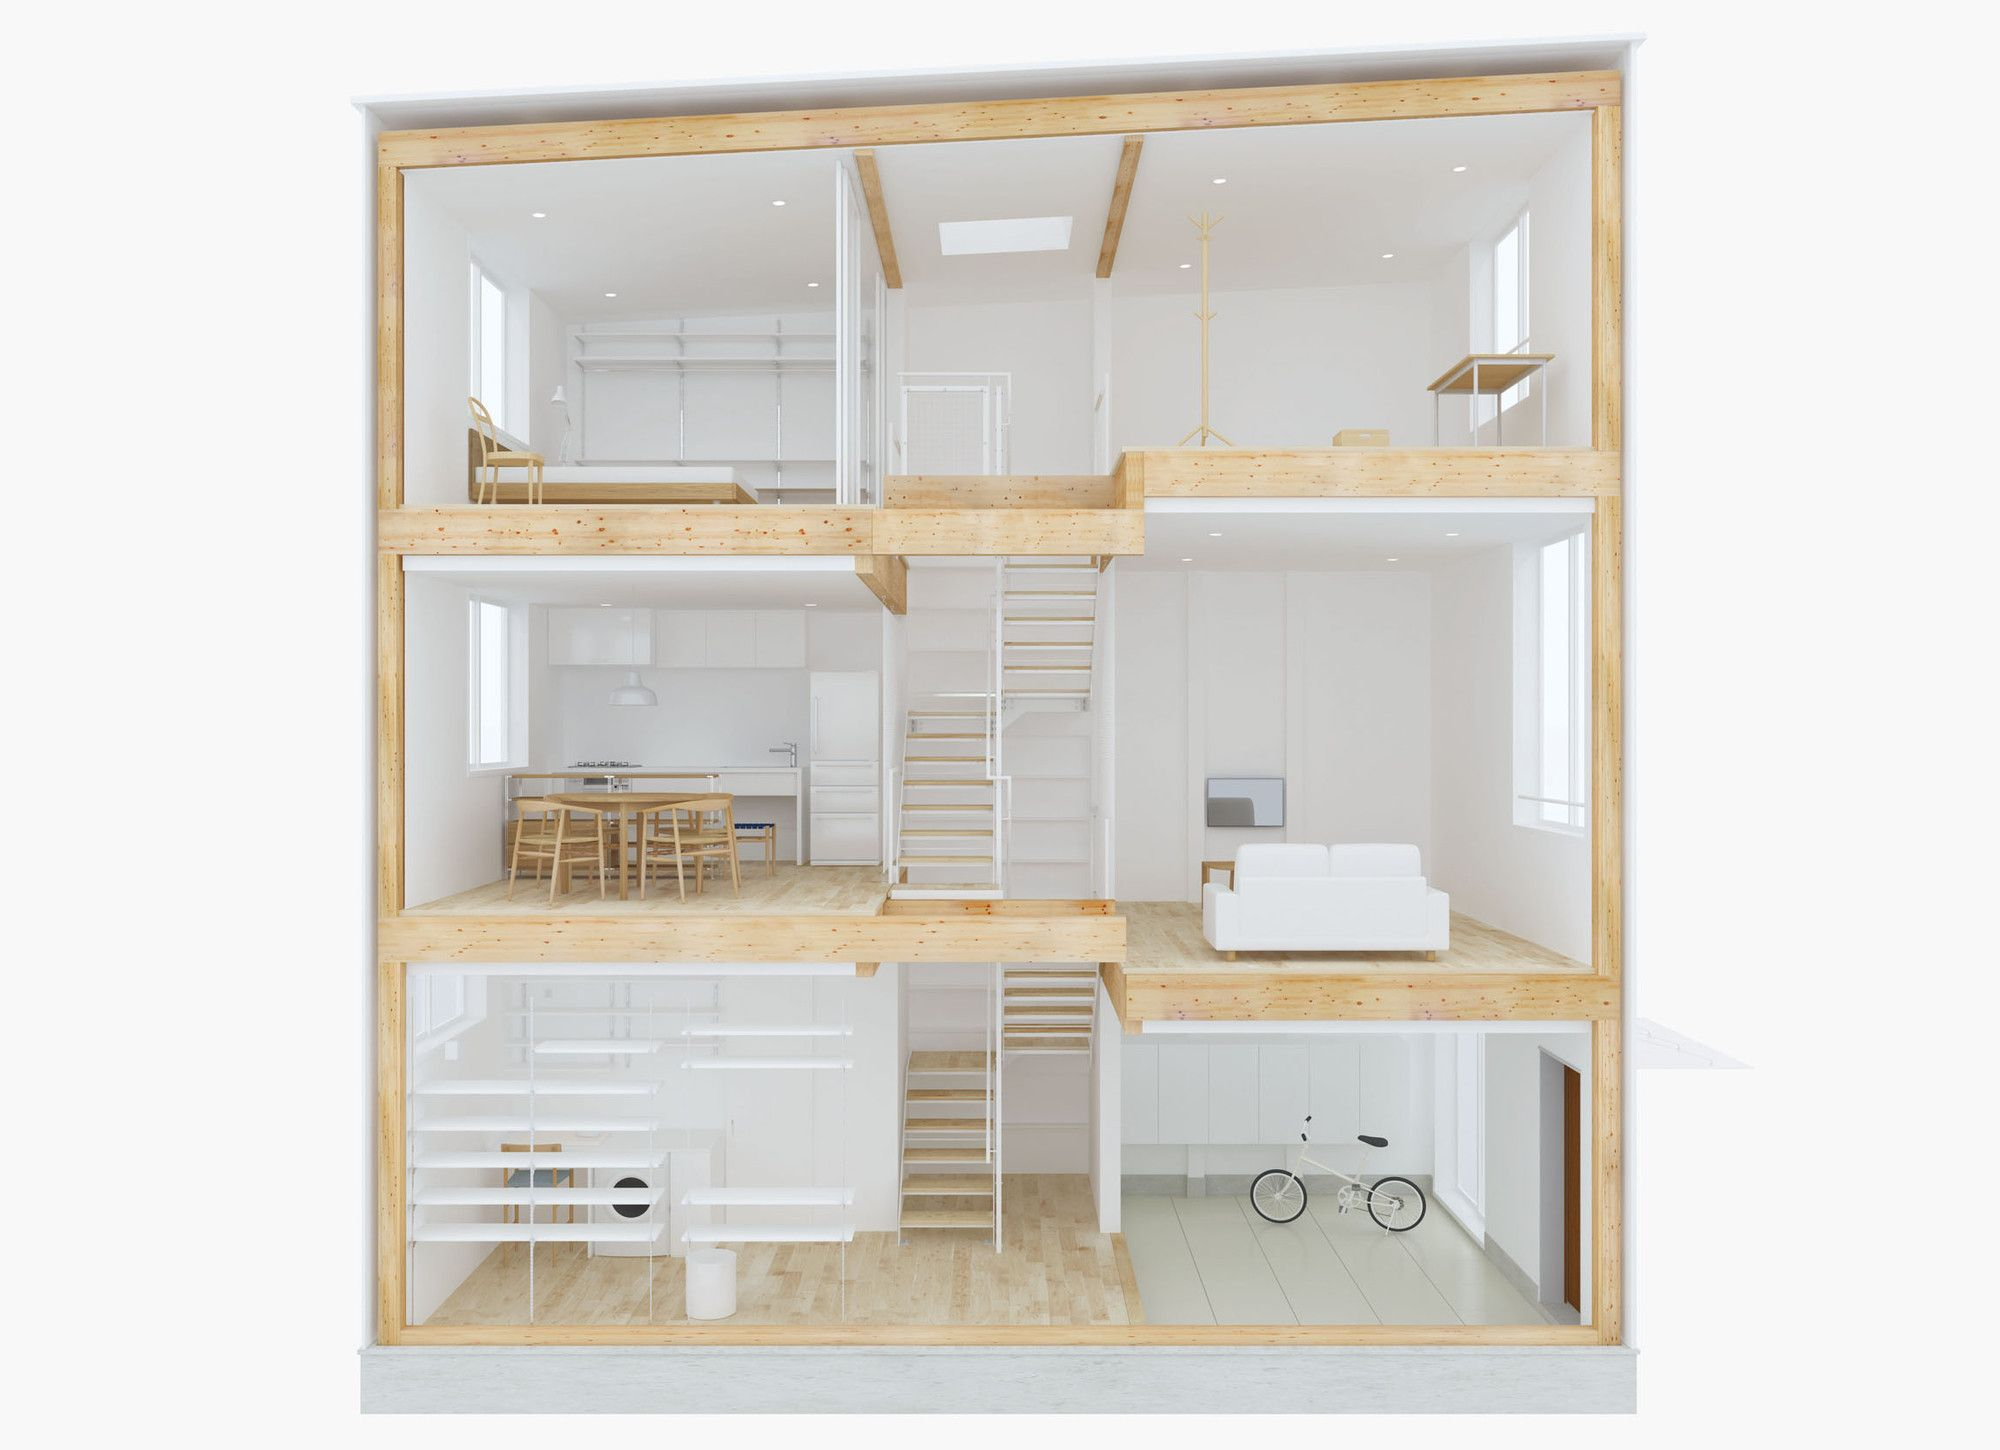 Gallery   Design Your Own Home With MUJIu0027s Prefab Vertical House   6